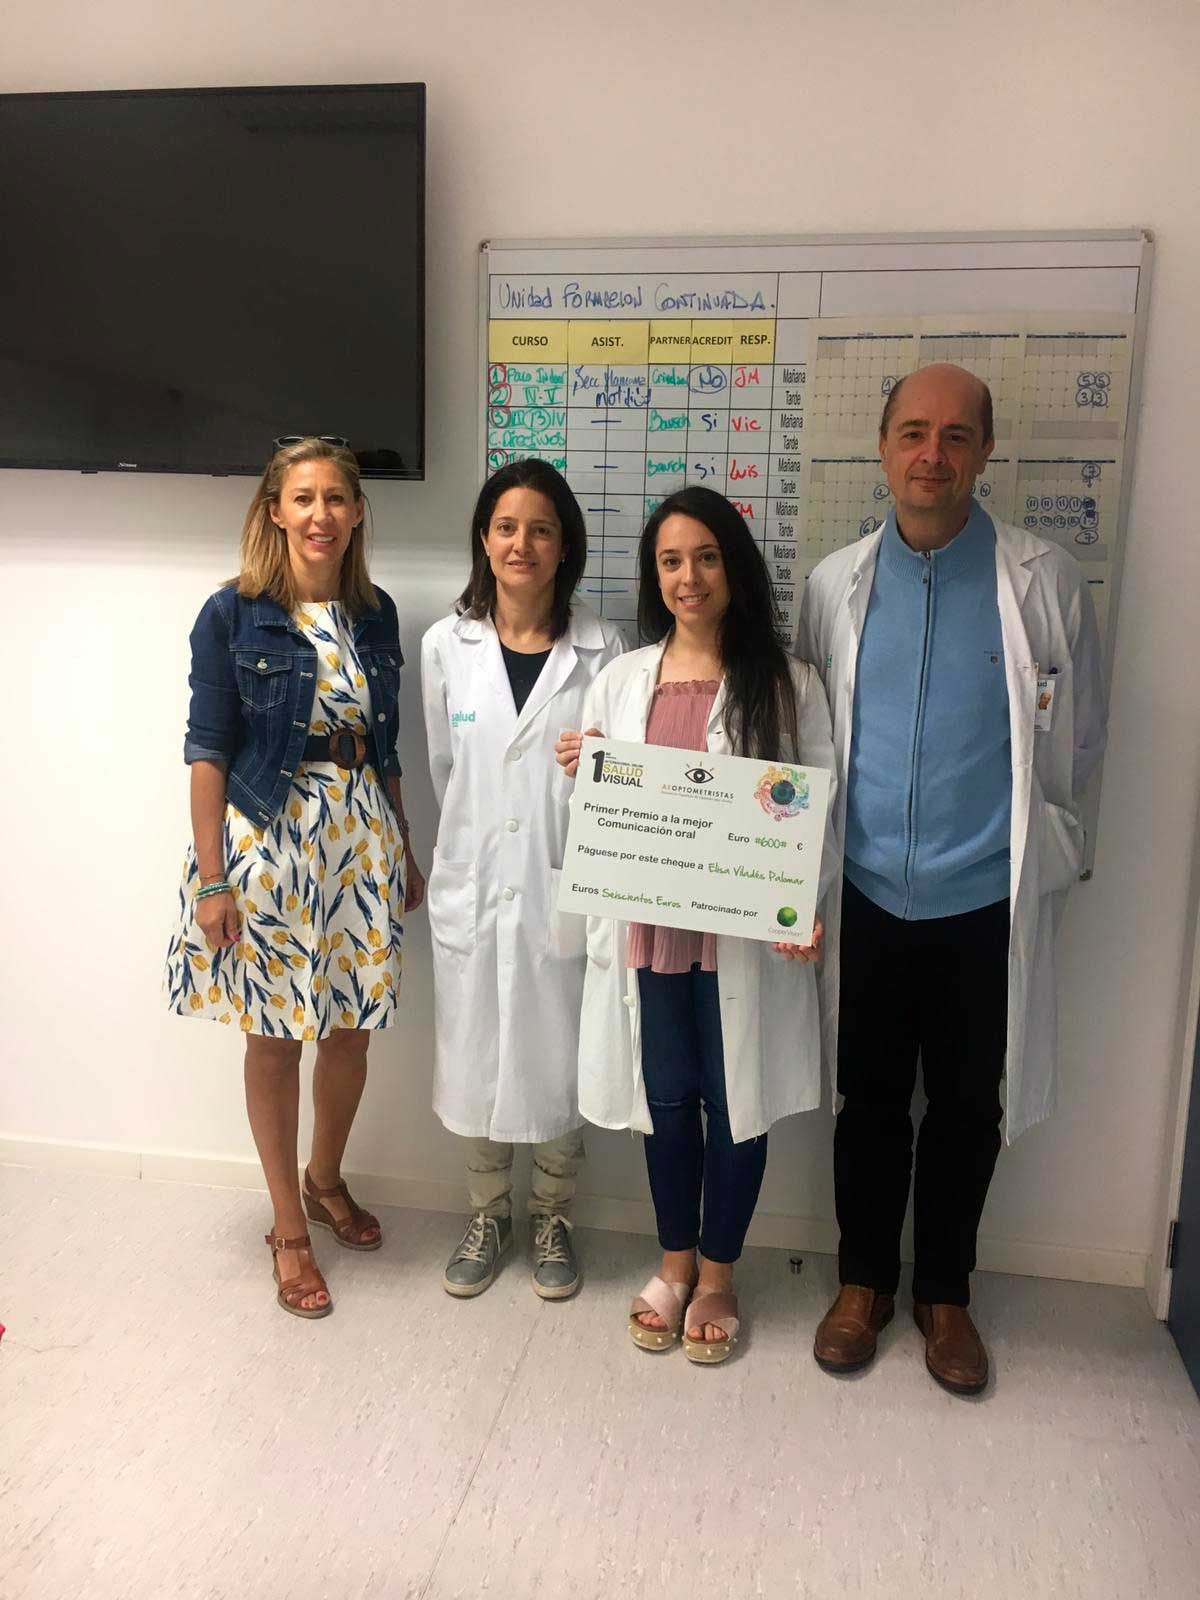 Elisa Viladés and Dr. Bartol awarded for their research